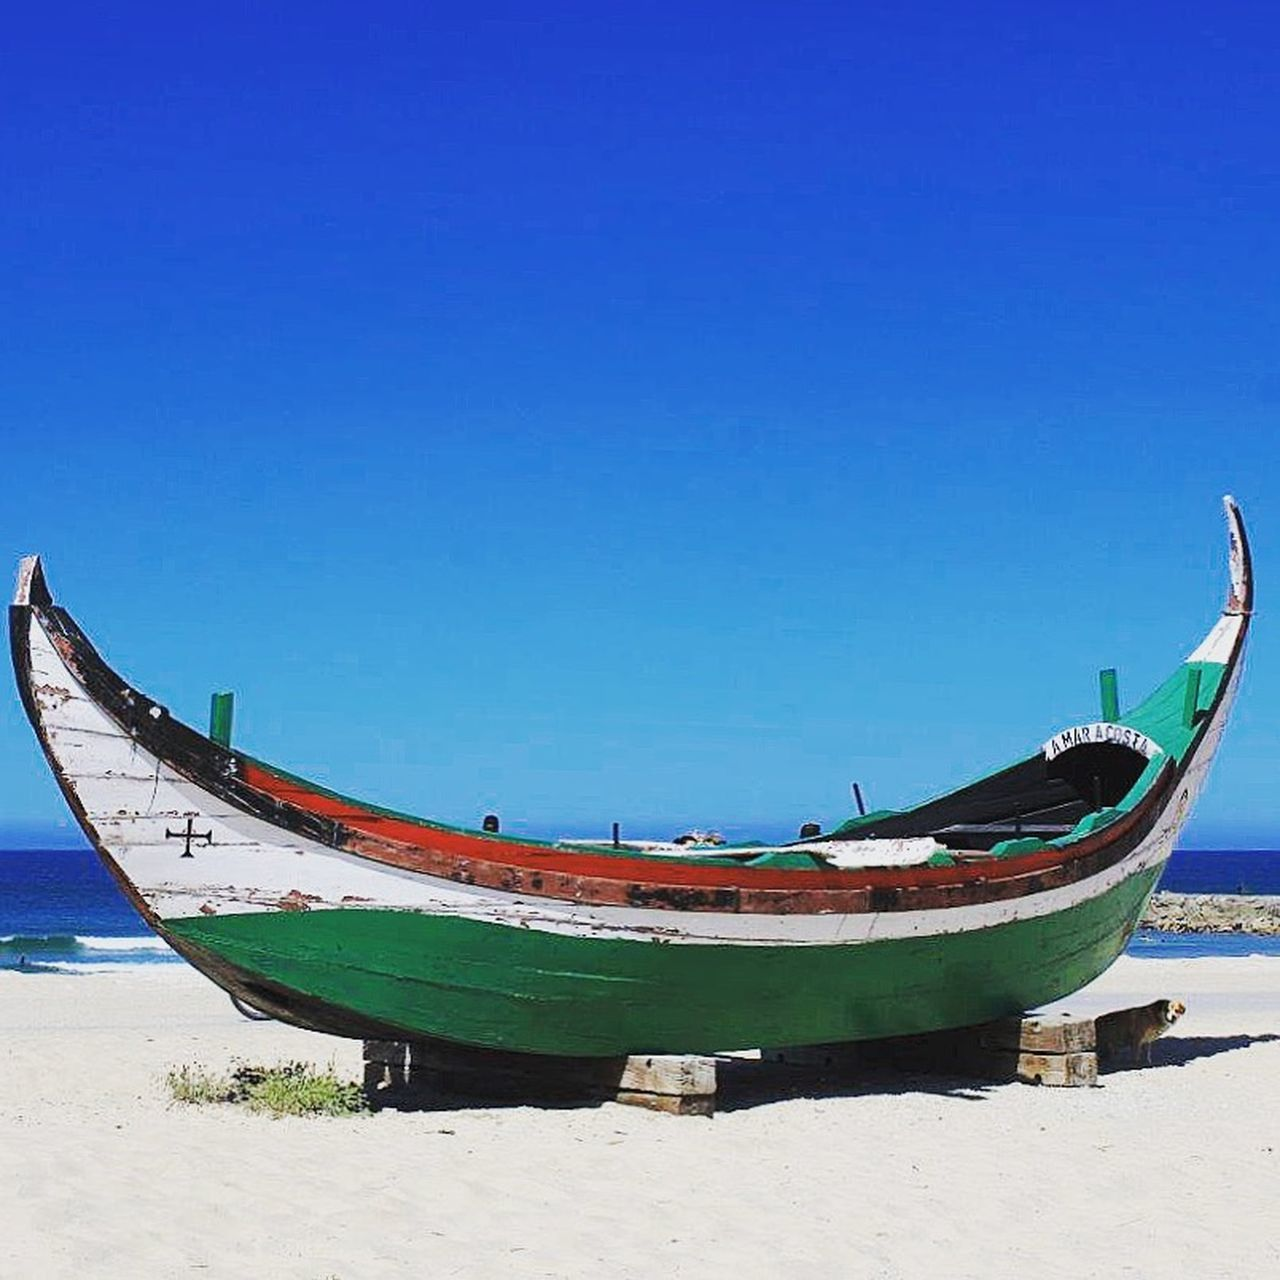 nautical vessel, moored, beach, transportation, sand, sea, mode of transport, water, nature, tranquility, no people, scenics, longtail boat, rowboat, outdoors, day, blue, clear sky, beauty in nature, sky, gondola - traditional boat